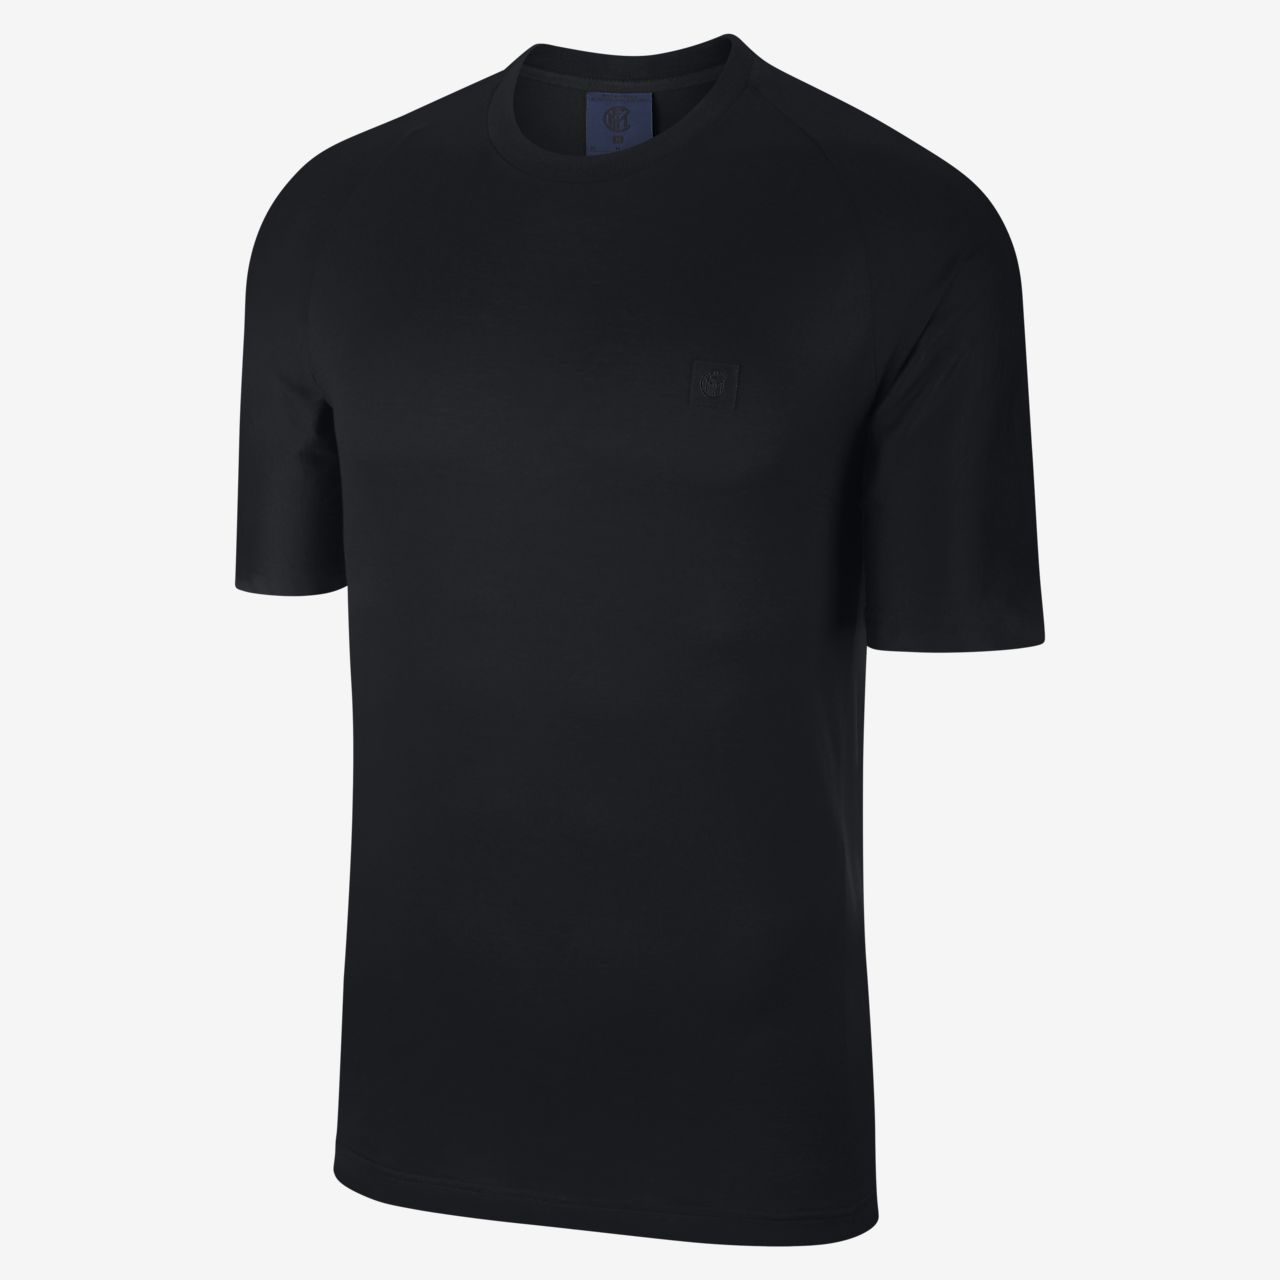 Haut à manches courtes Inter Milan Made in Italy pour Homme